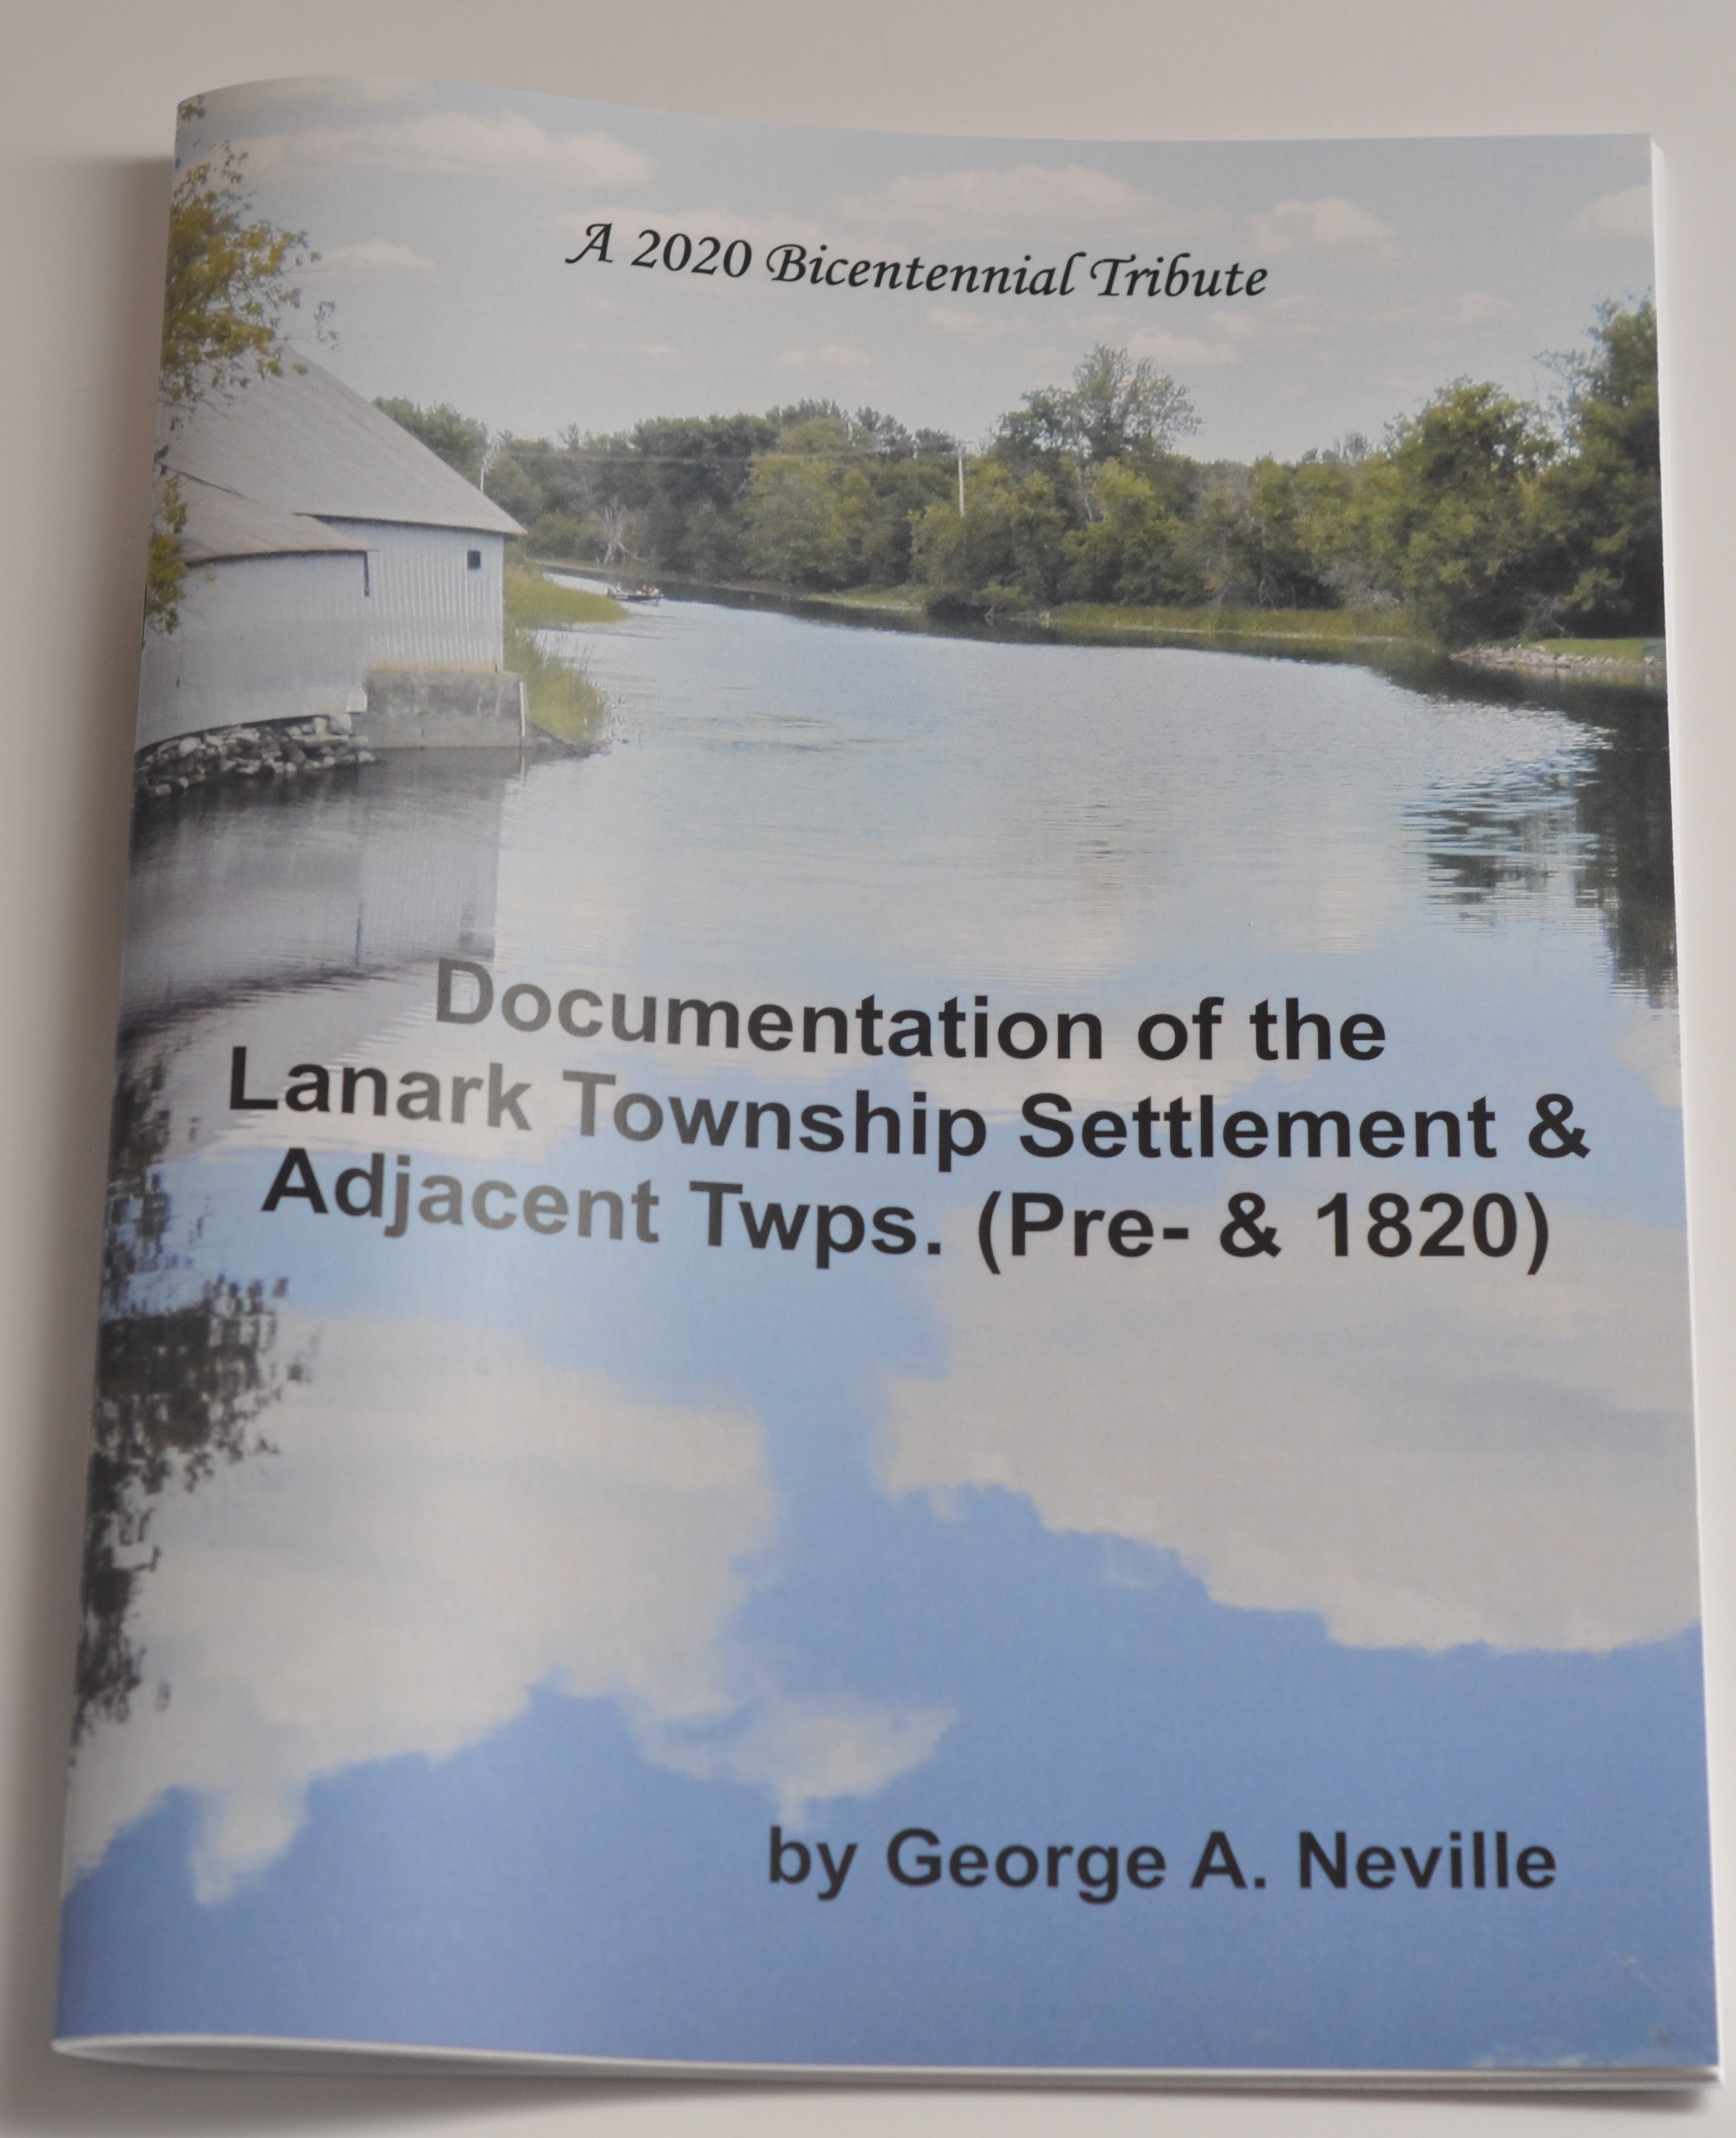 Documentation of the Lanark Township Settlement and Adjacent Townships